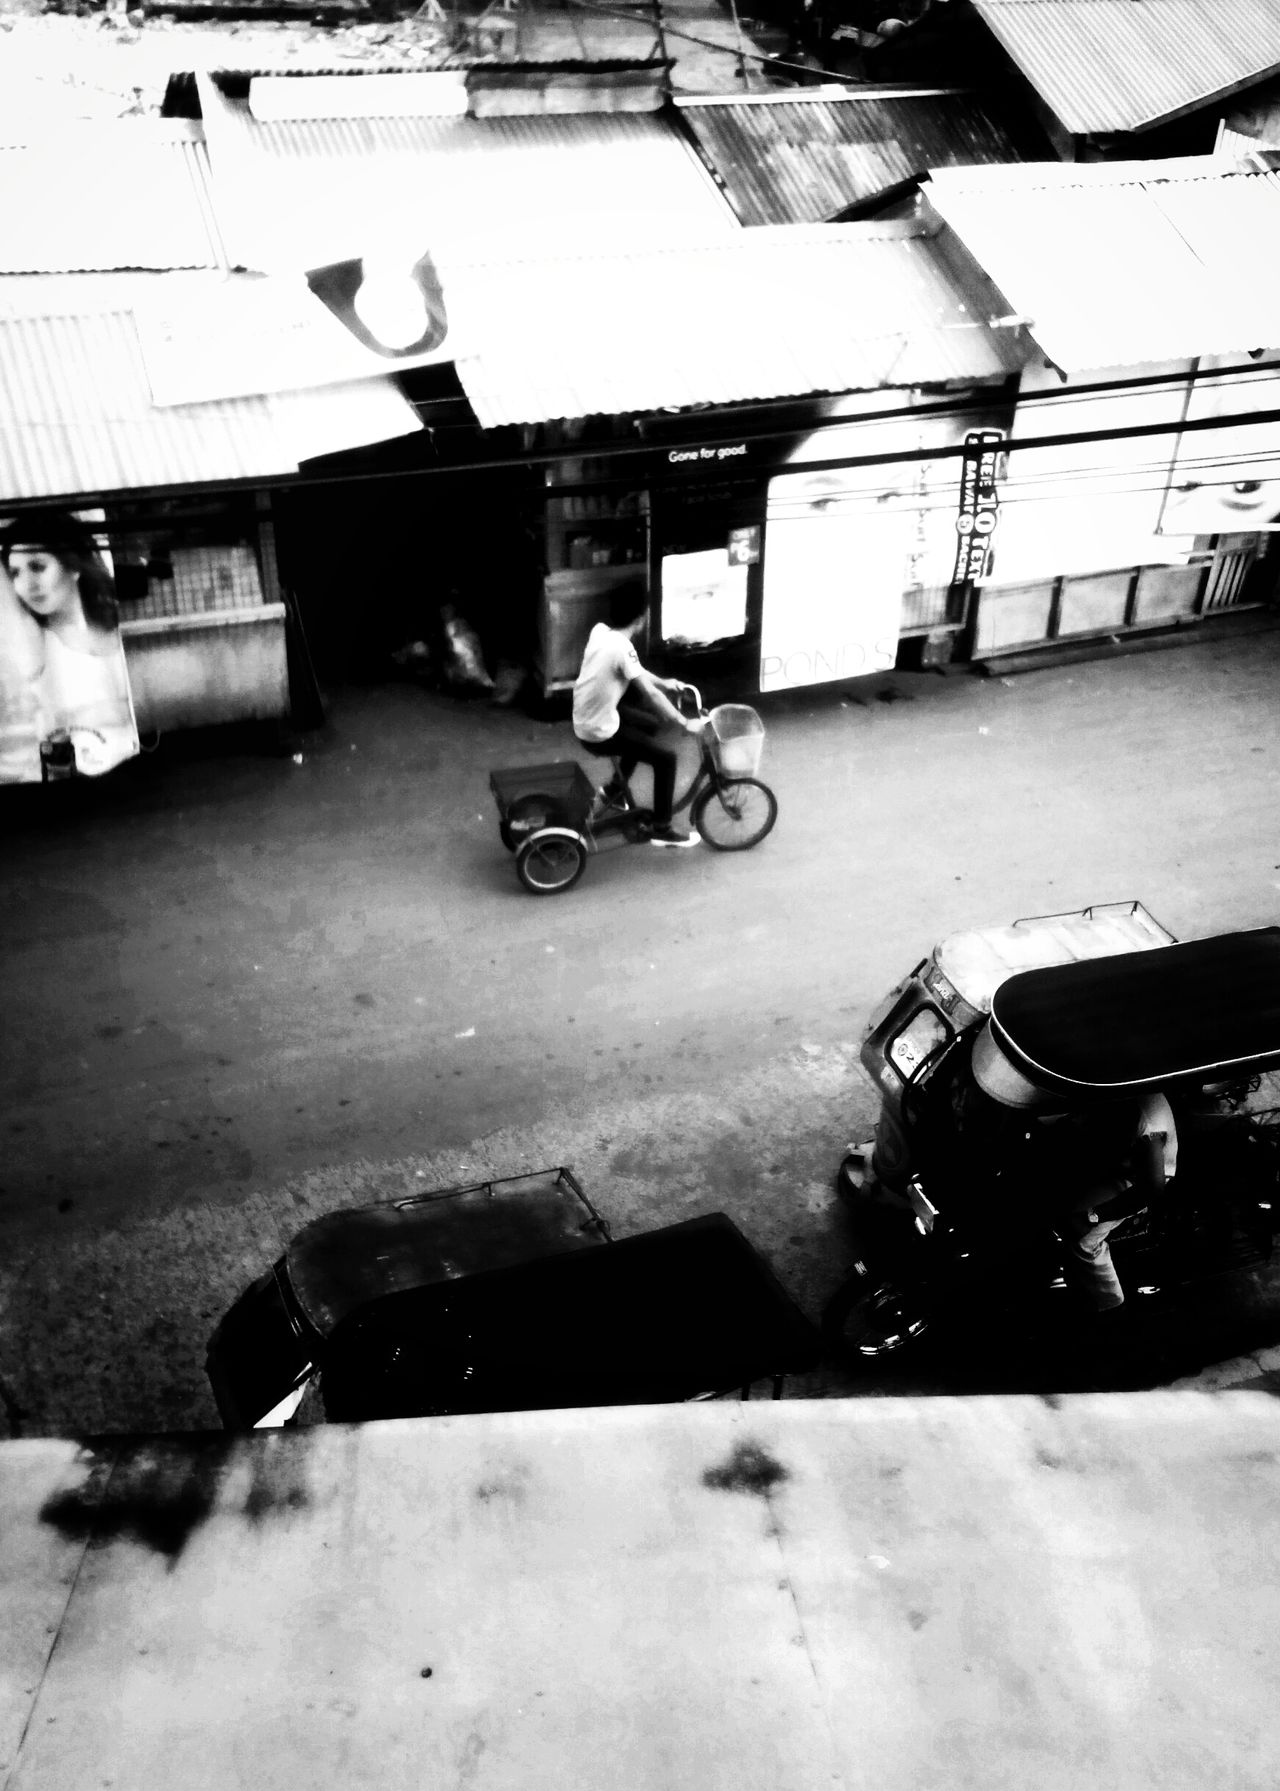 Top View Biking Black And White Street Photography Old Market Agora Stall Happiestplaceonearth After Fire BestEyeemShots First First Eyeem Photo Photography Go Travel Journeyphotography Capturing Freedom Capturing Movement Capture The Moment Leading Lines Learn & Shoot: Leading Lines Capturing The Moment Relaxing Afternoon Afternoon Walk